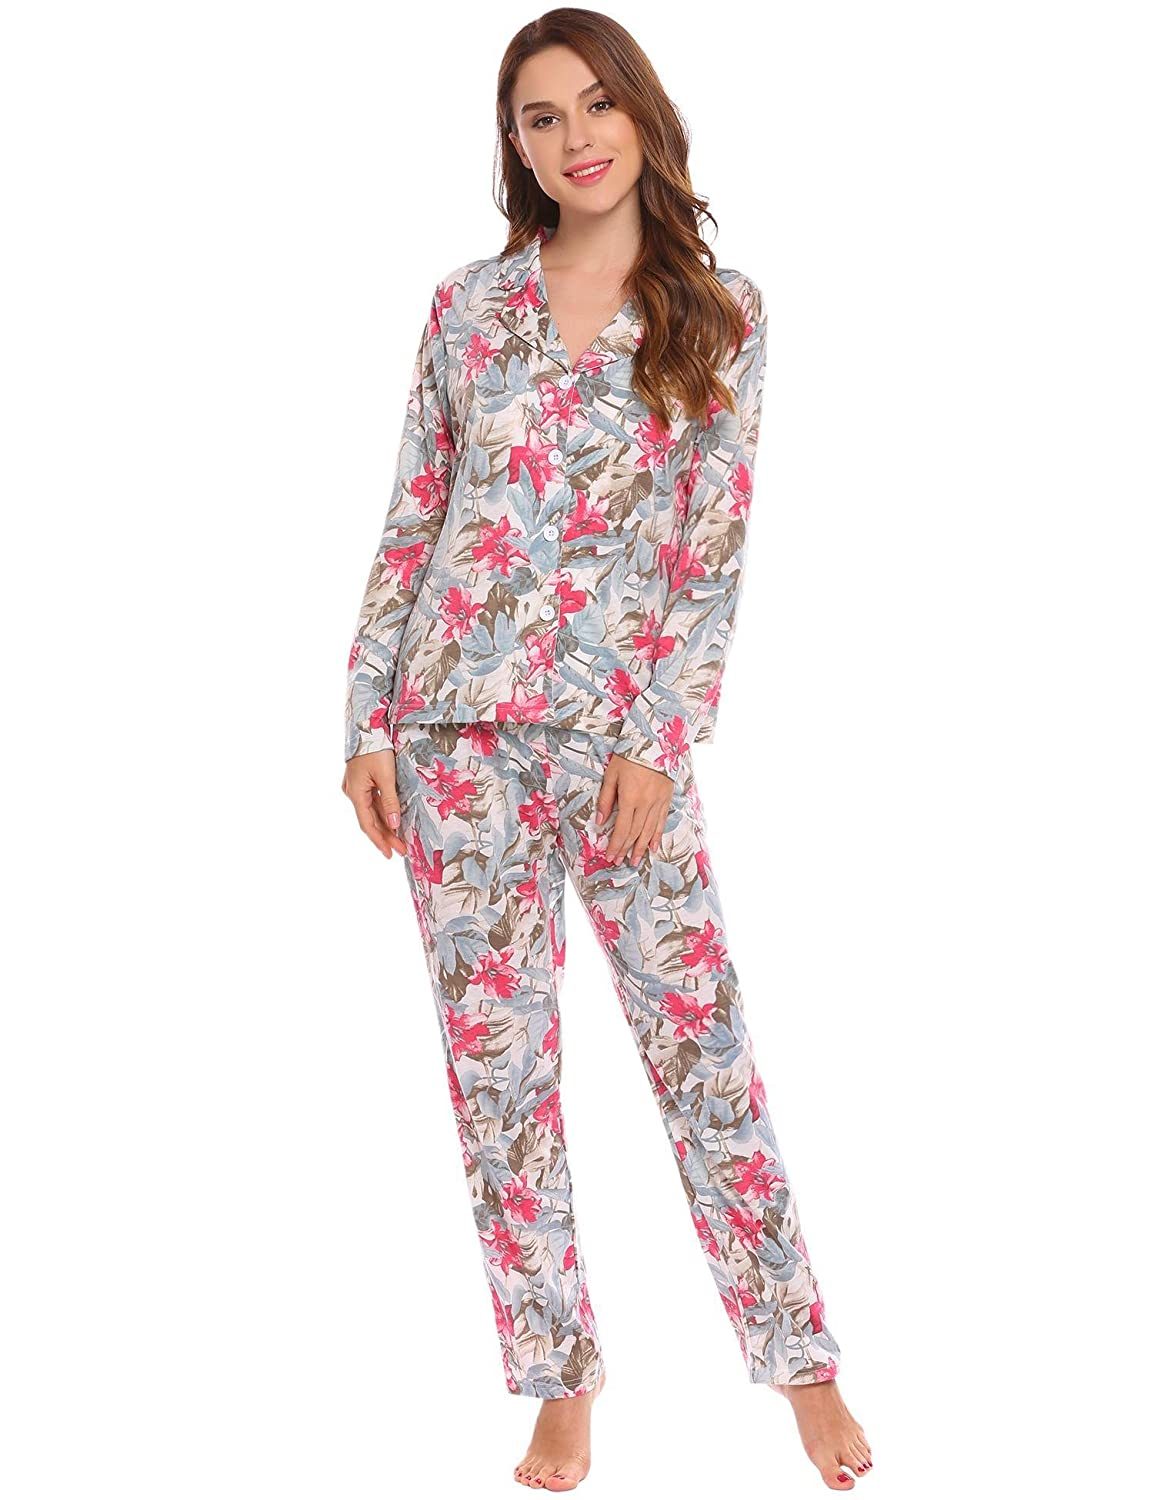 Ekouaer Women s Comfy Floral Print Long Sleeves Floral Pajamas Set Sleepwear  Tops and Pants S-XXL at Amazon Women s Clothing store  0b88e28a0